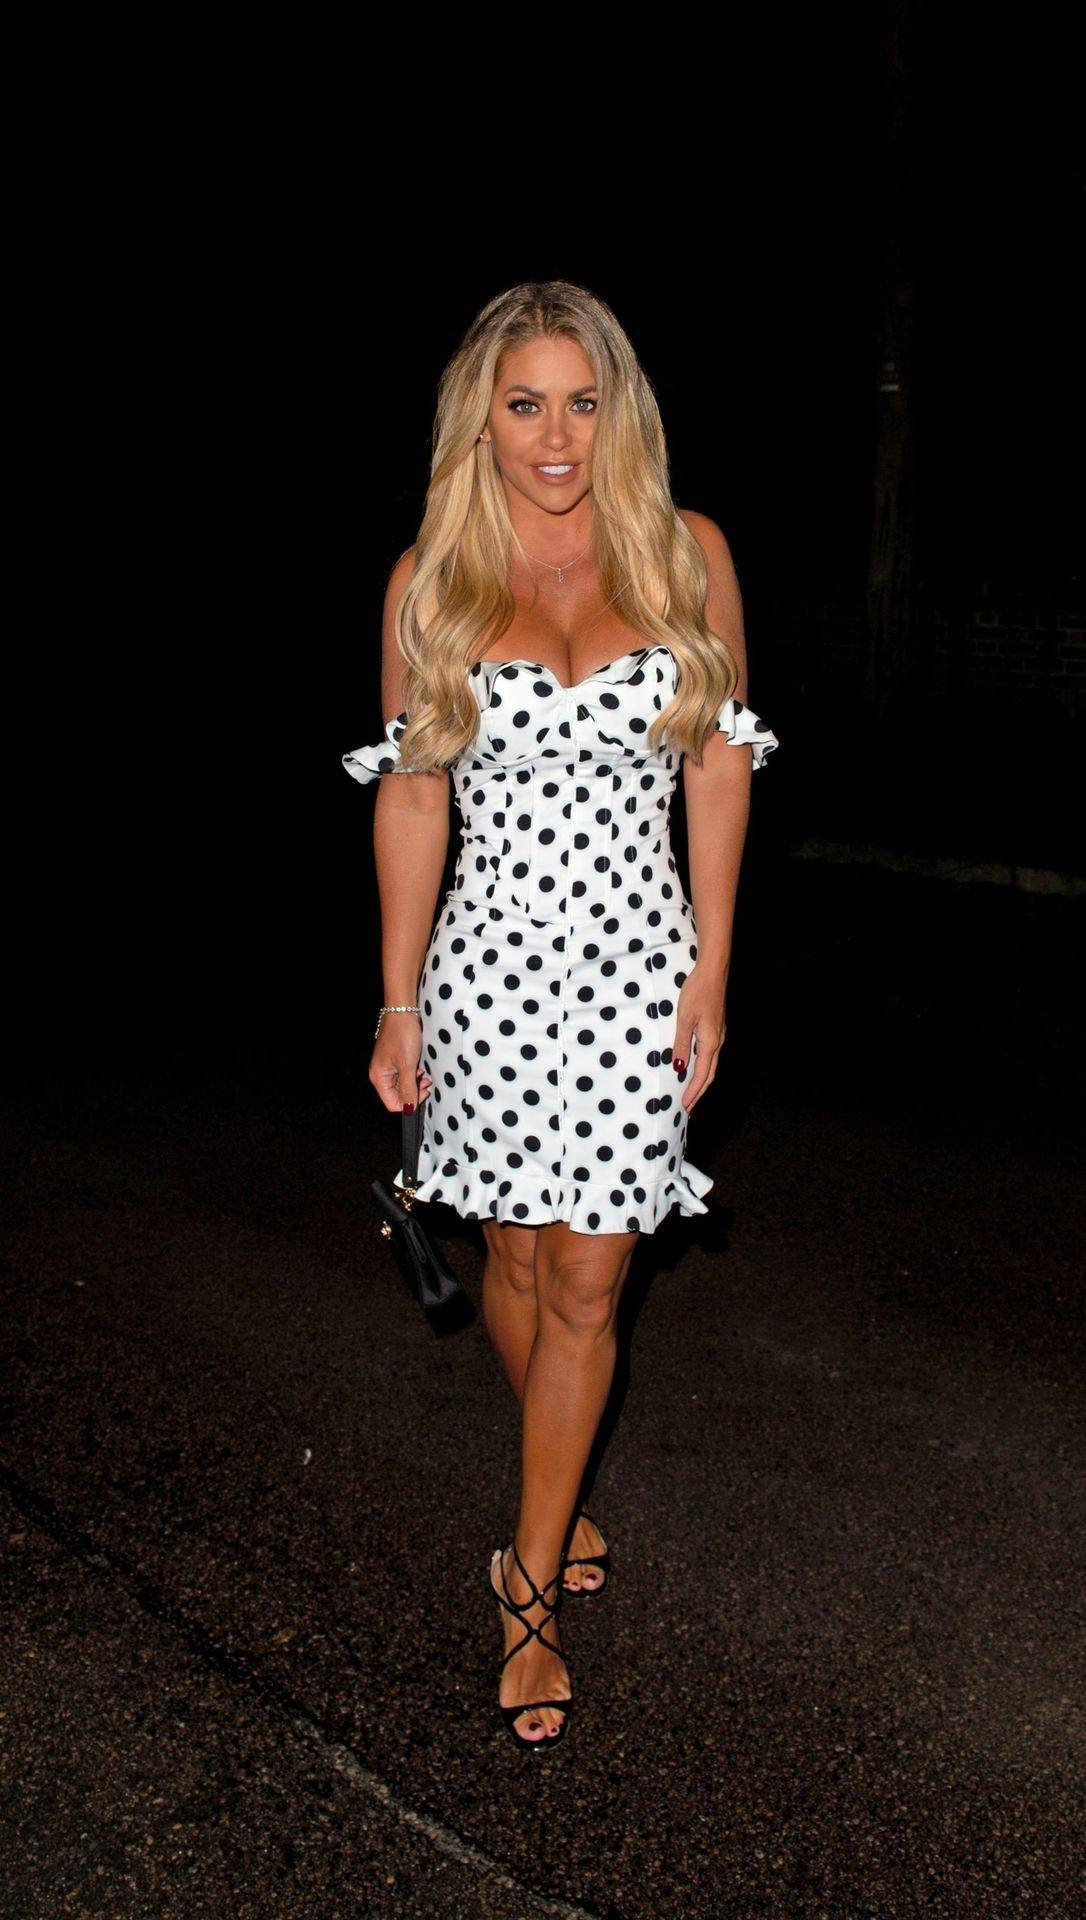 Bianca Gascoigne – Hot Boobs In Sexy Cleavagy Dress Out In Kent 0009